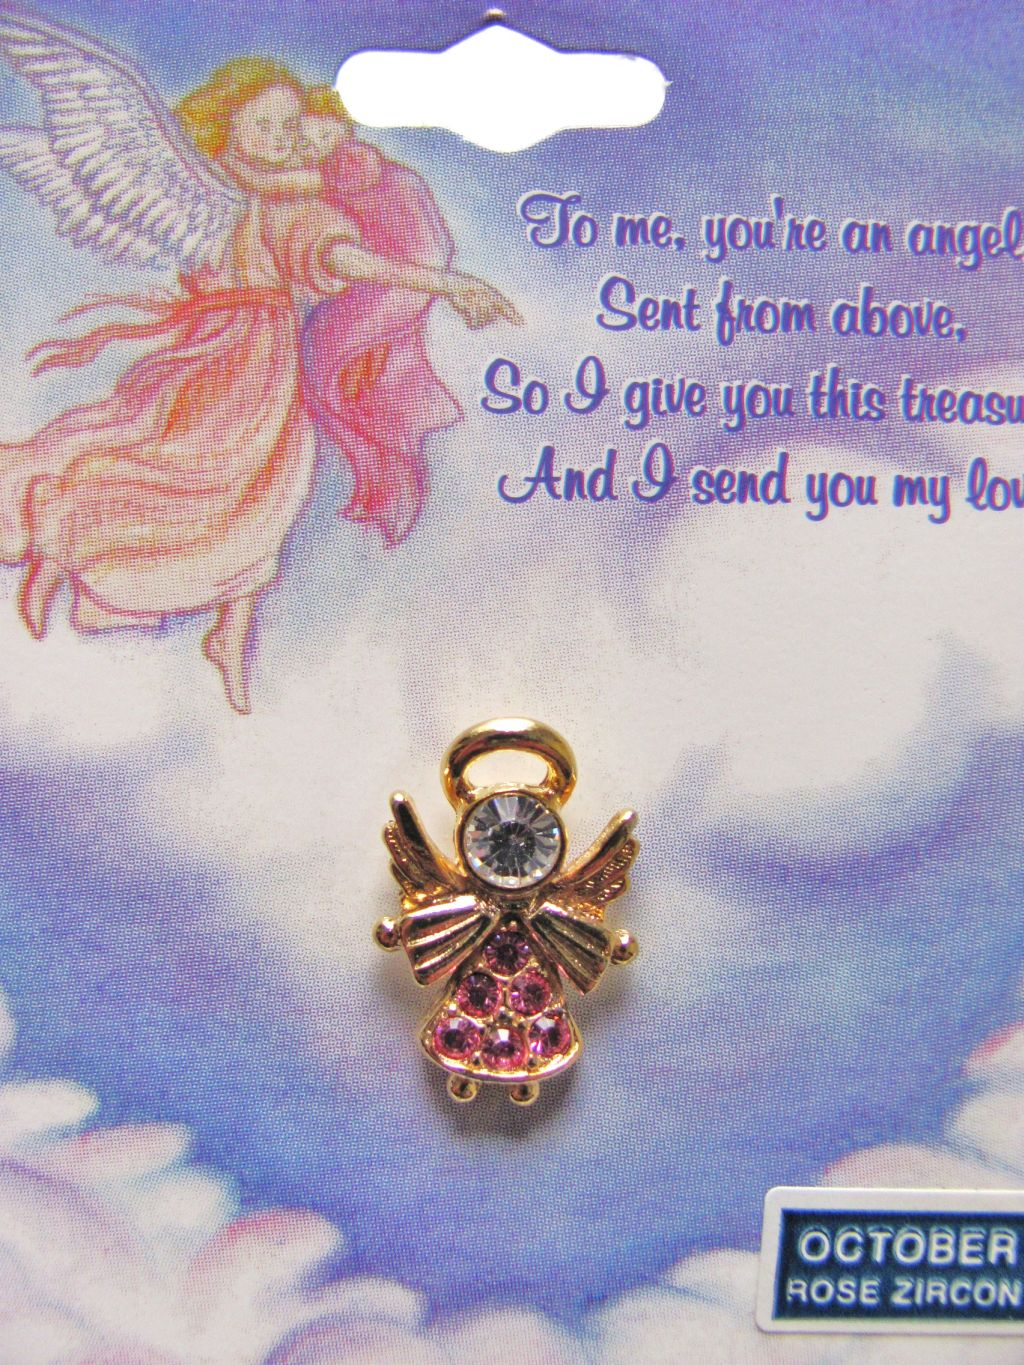 Rose Zircon-October Birthstone Angel Pin Gold Tone, Genuine Austrian Crystals